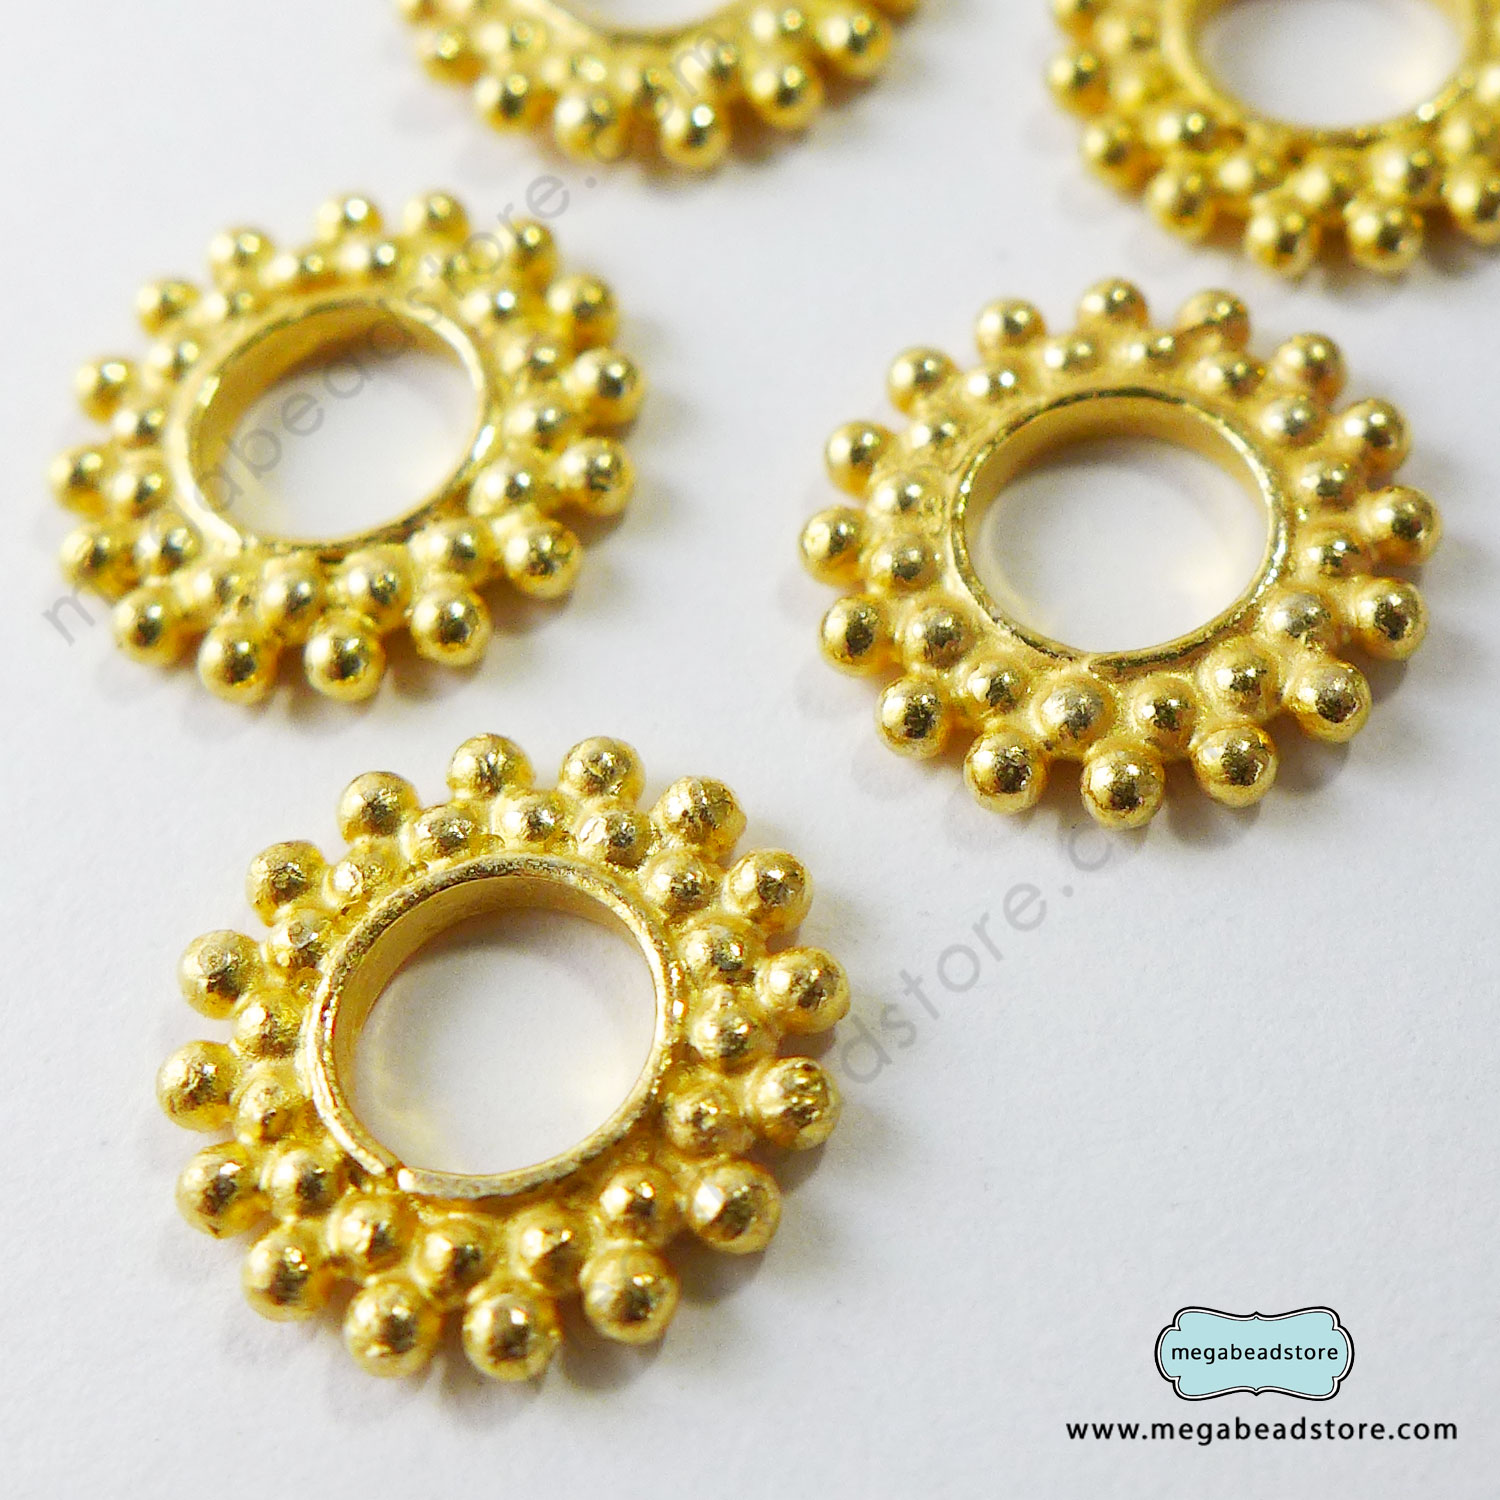 12mm Vermeil Spacers   12mm x 1.5mm   1 pc